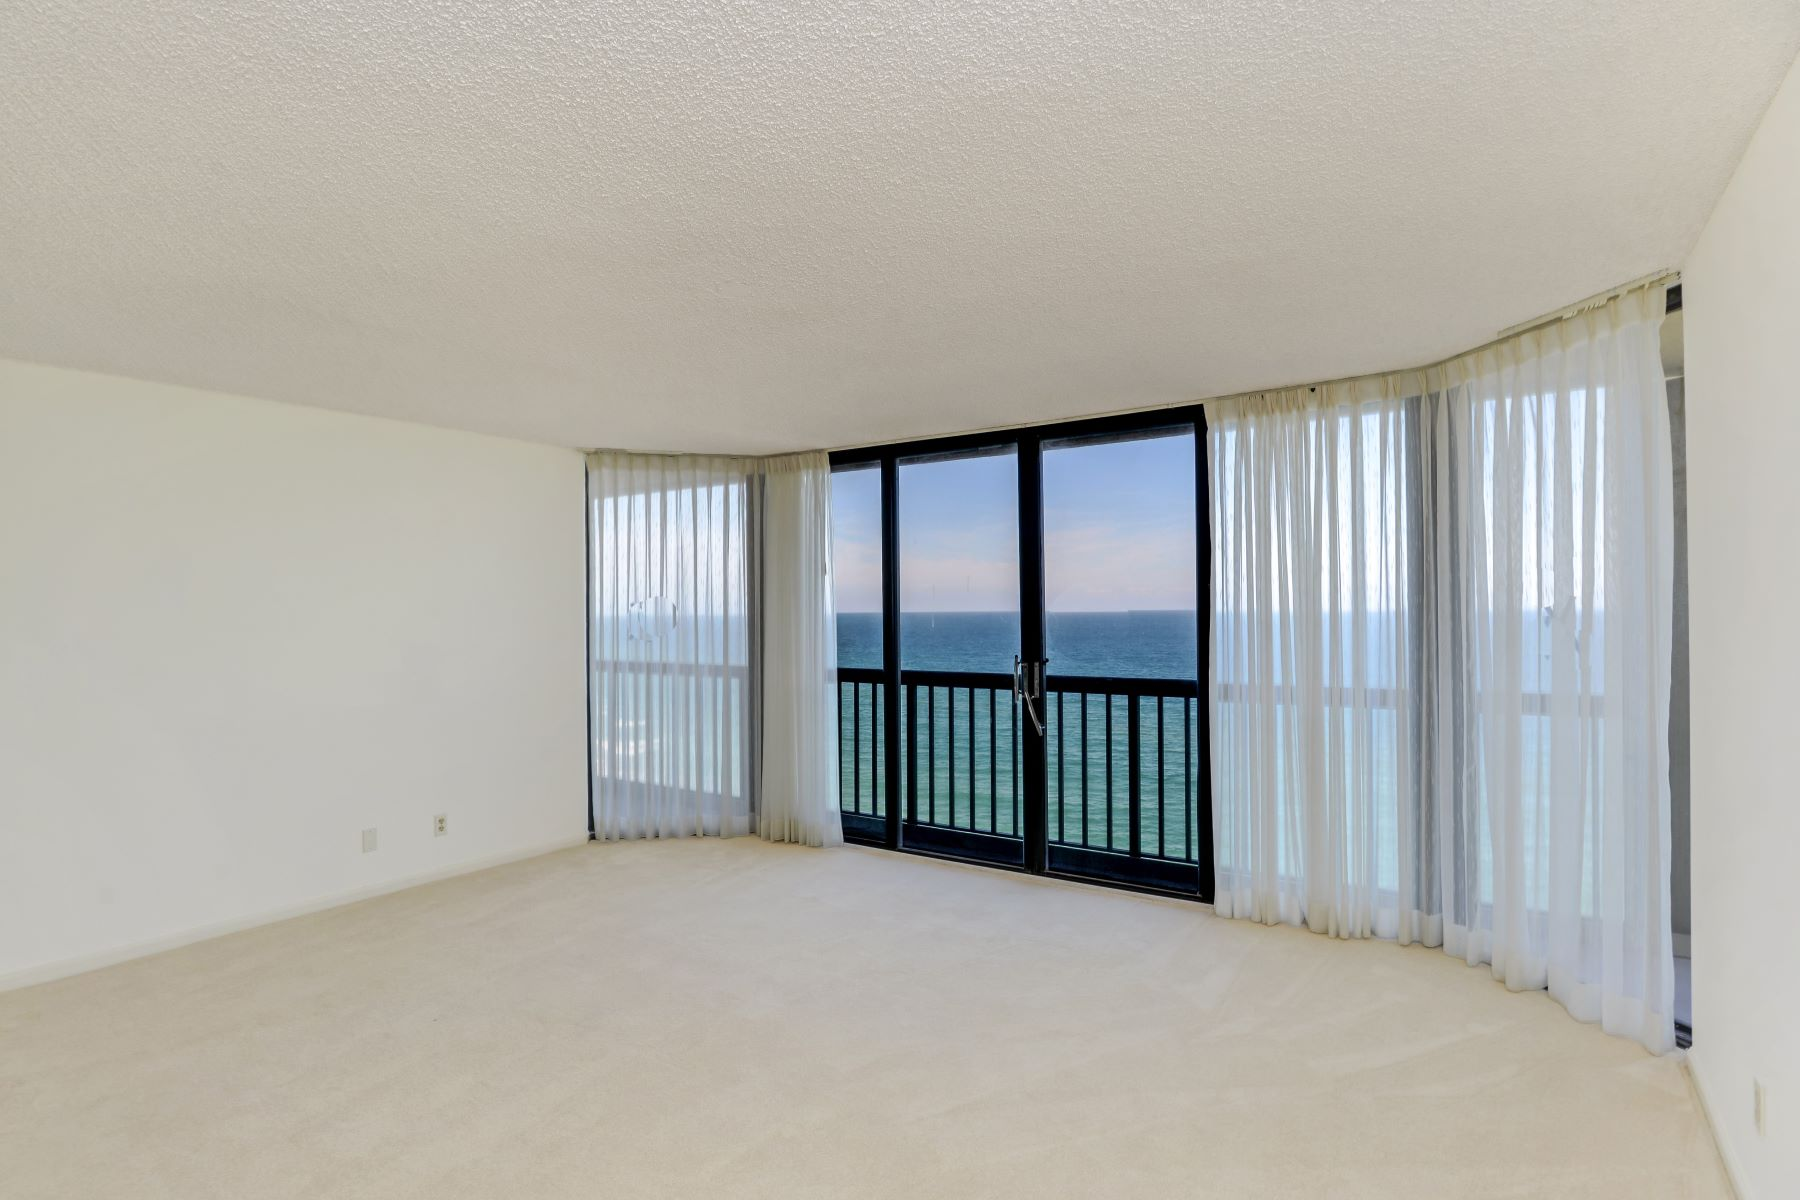 Condominium for Sale at 9550 S Ocean Drive #1505 9550 S Ocean Drive 1505 Jensen Beach, Florida 34957 United States